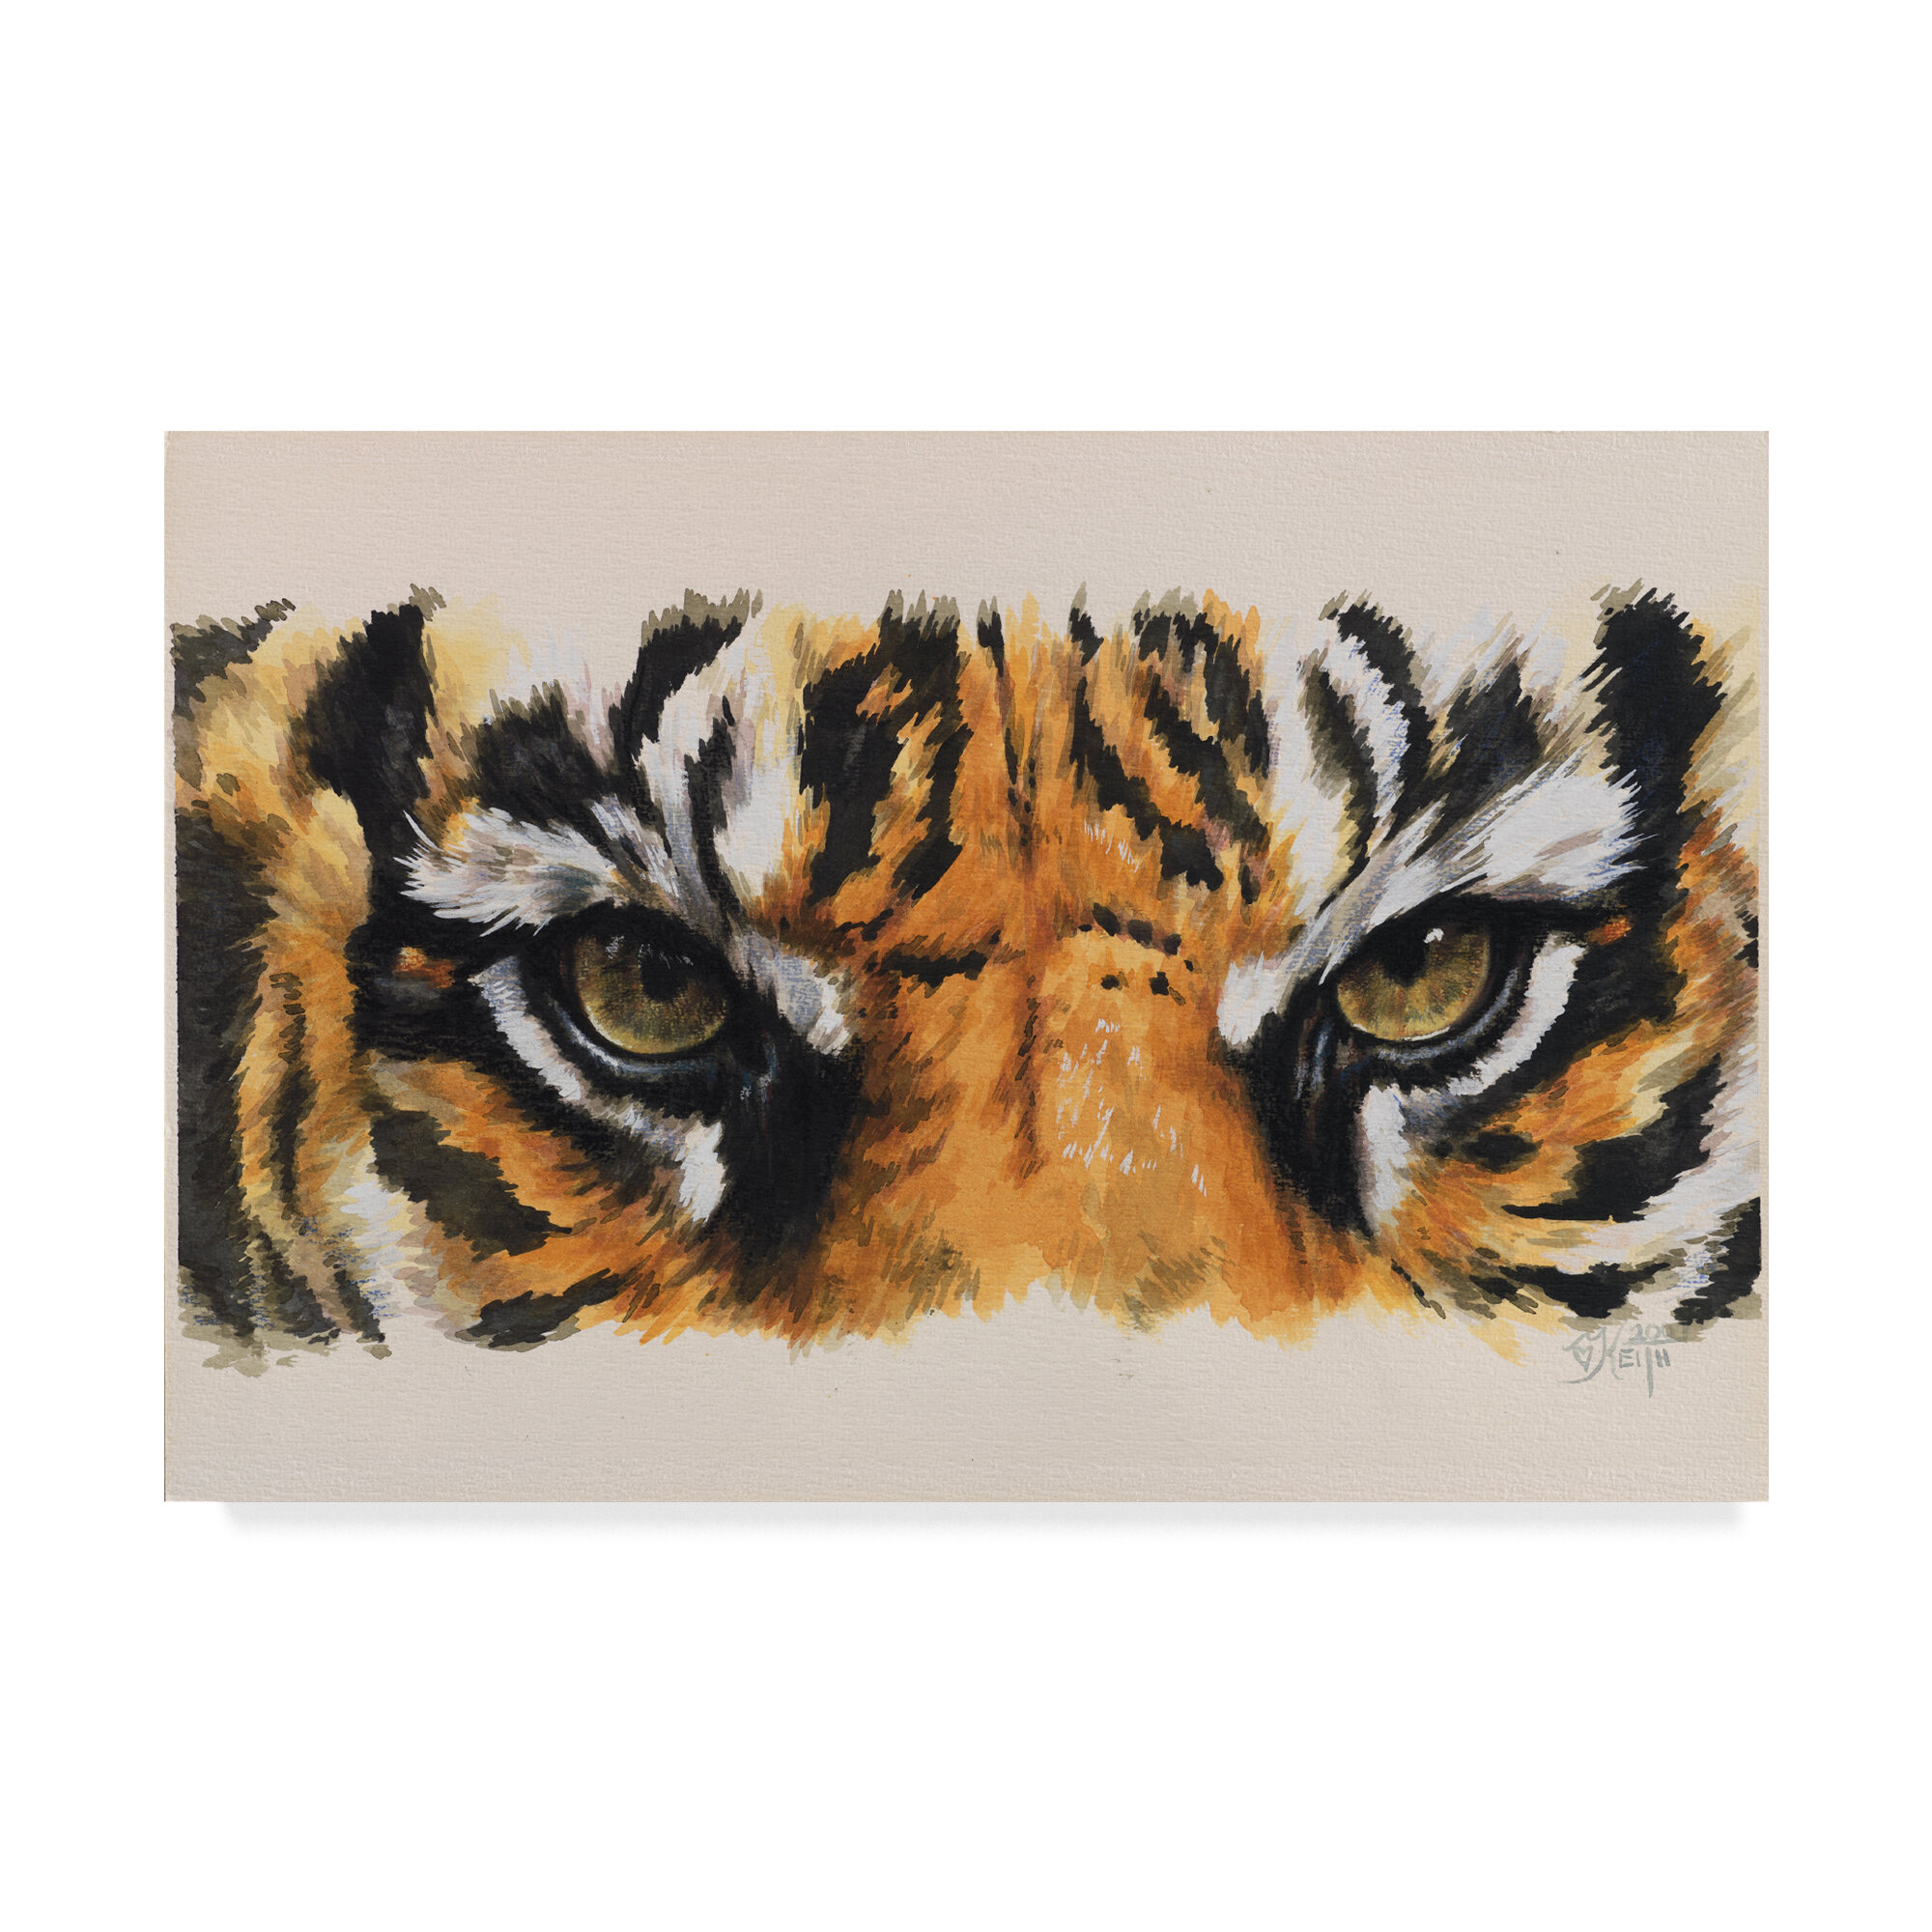 Mini Tiger Oil Painting on 1.5 by 1.5 inch Wood